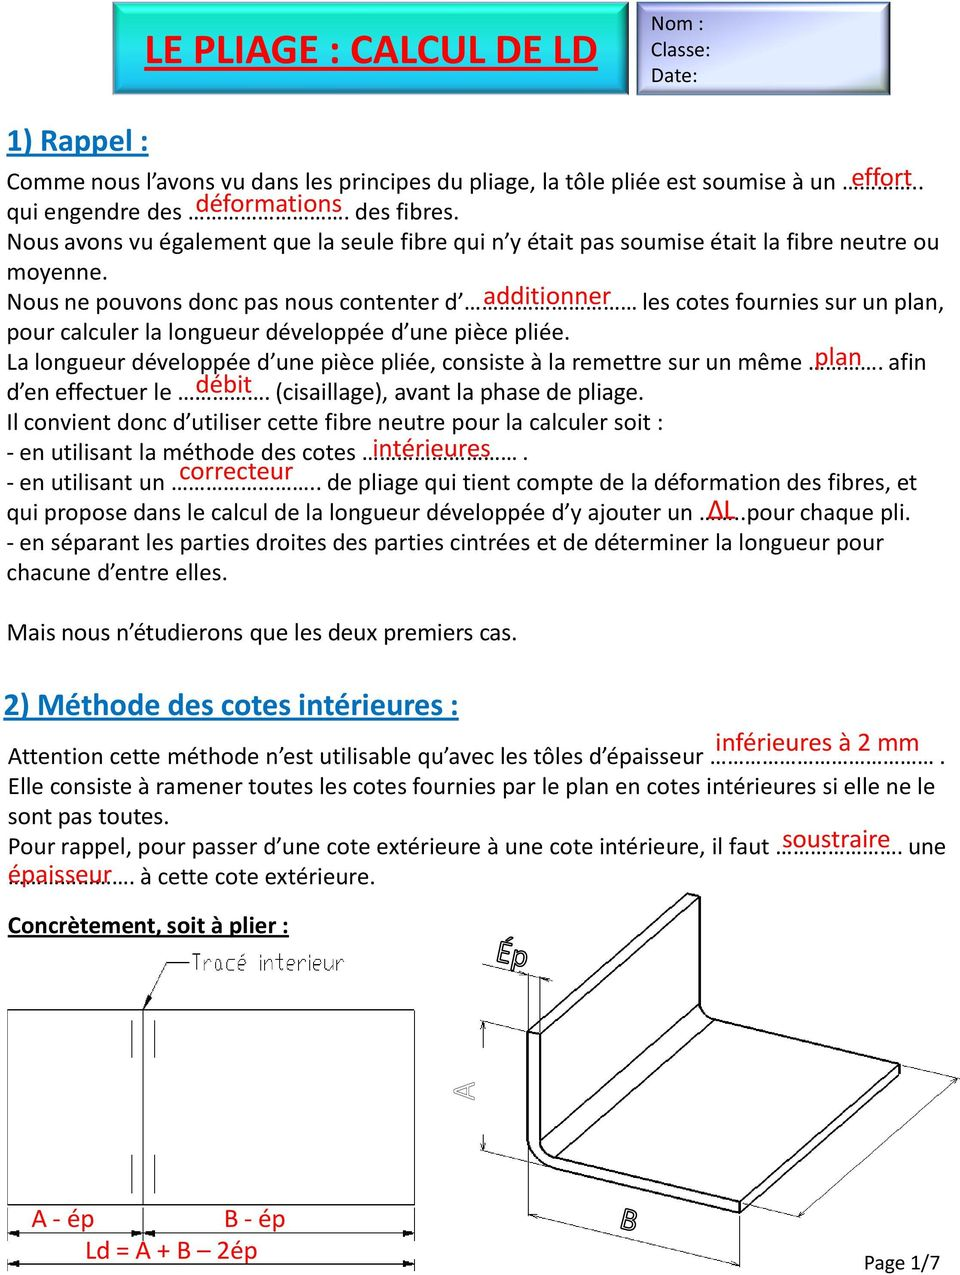 le pliage calcul de ld pdf. Black Bedroom Furniture Sets. Home Design Ideas